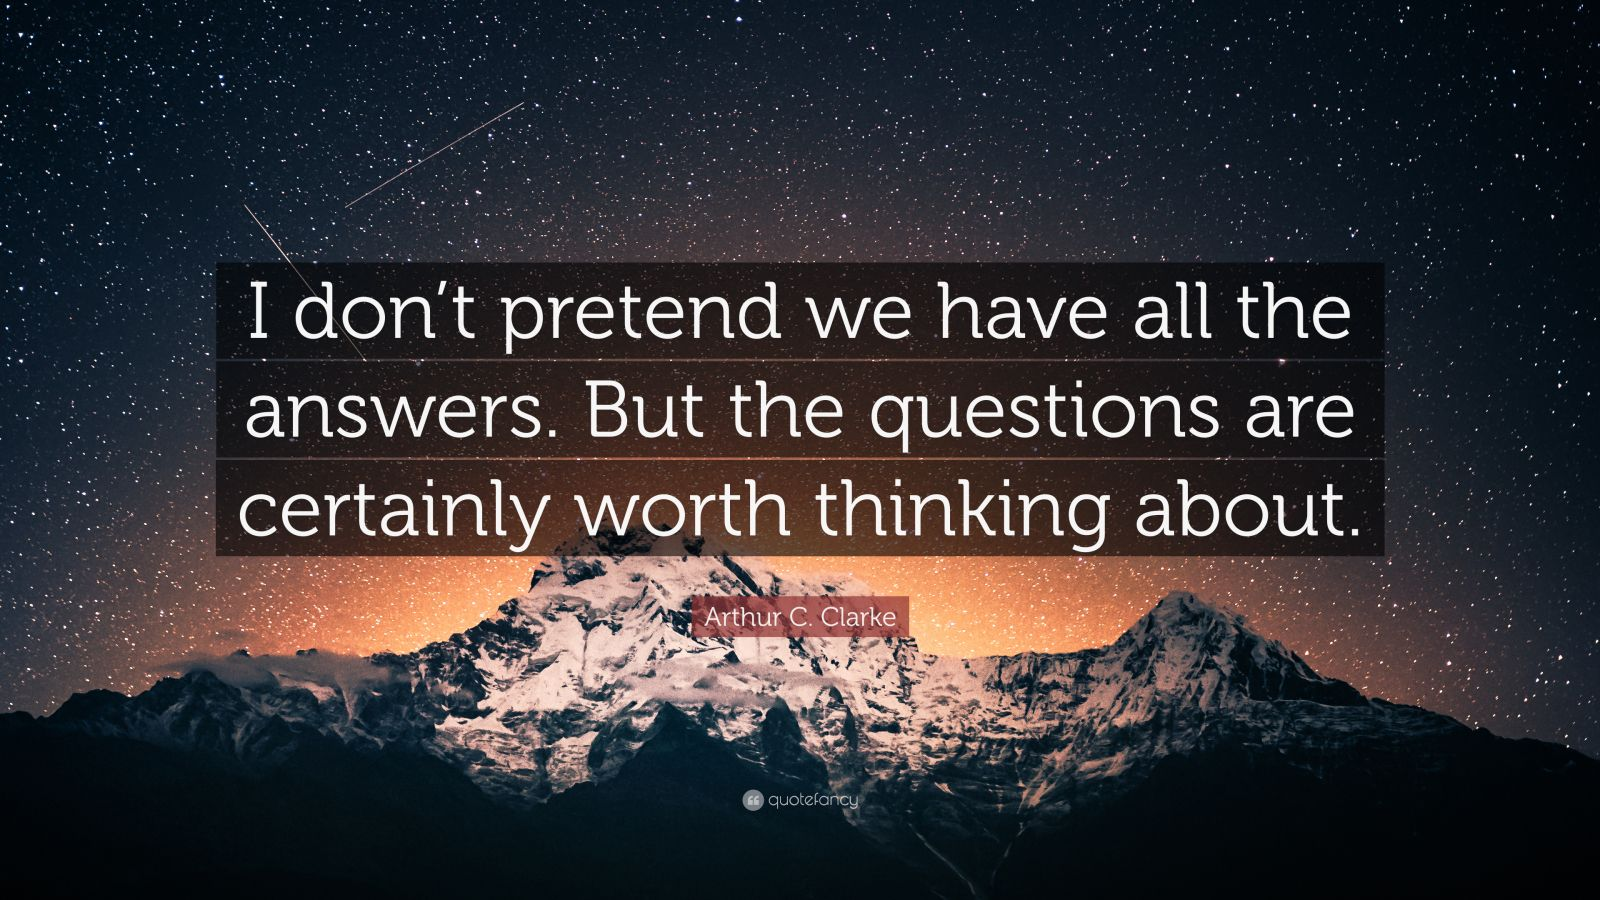 """Arthur C. Clarke Quote: """"I don't pretend we have all the answers. But the questions are certainly worth thinking about."""""""